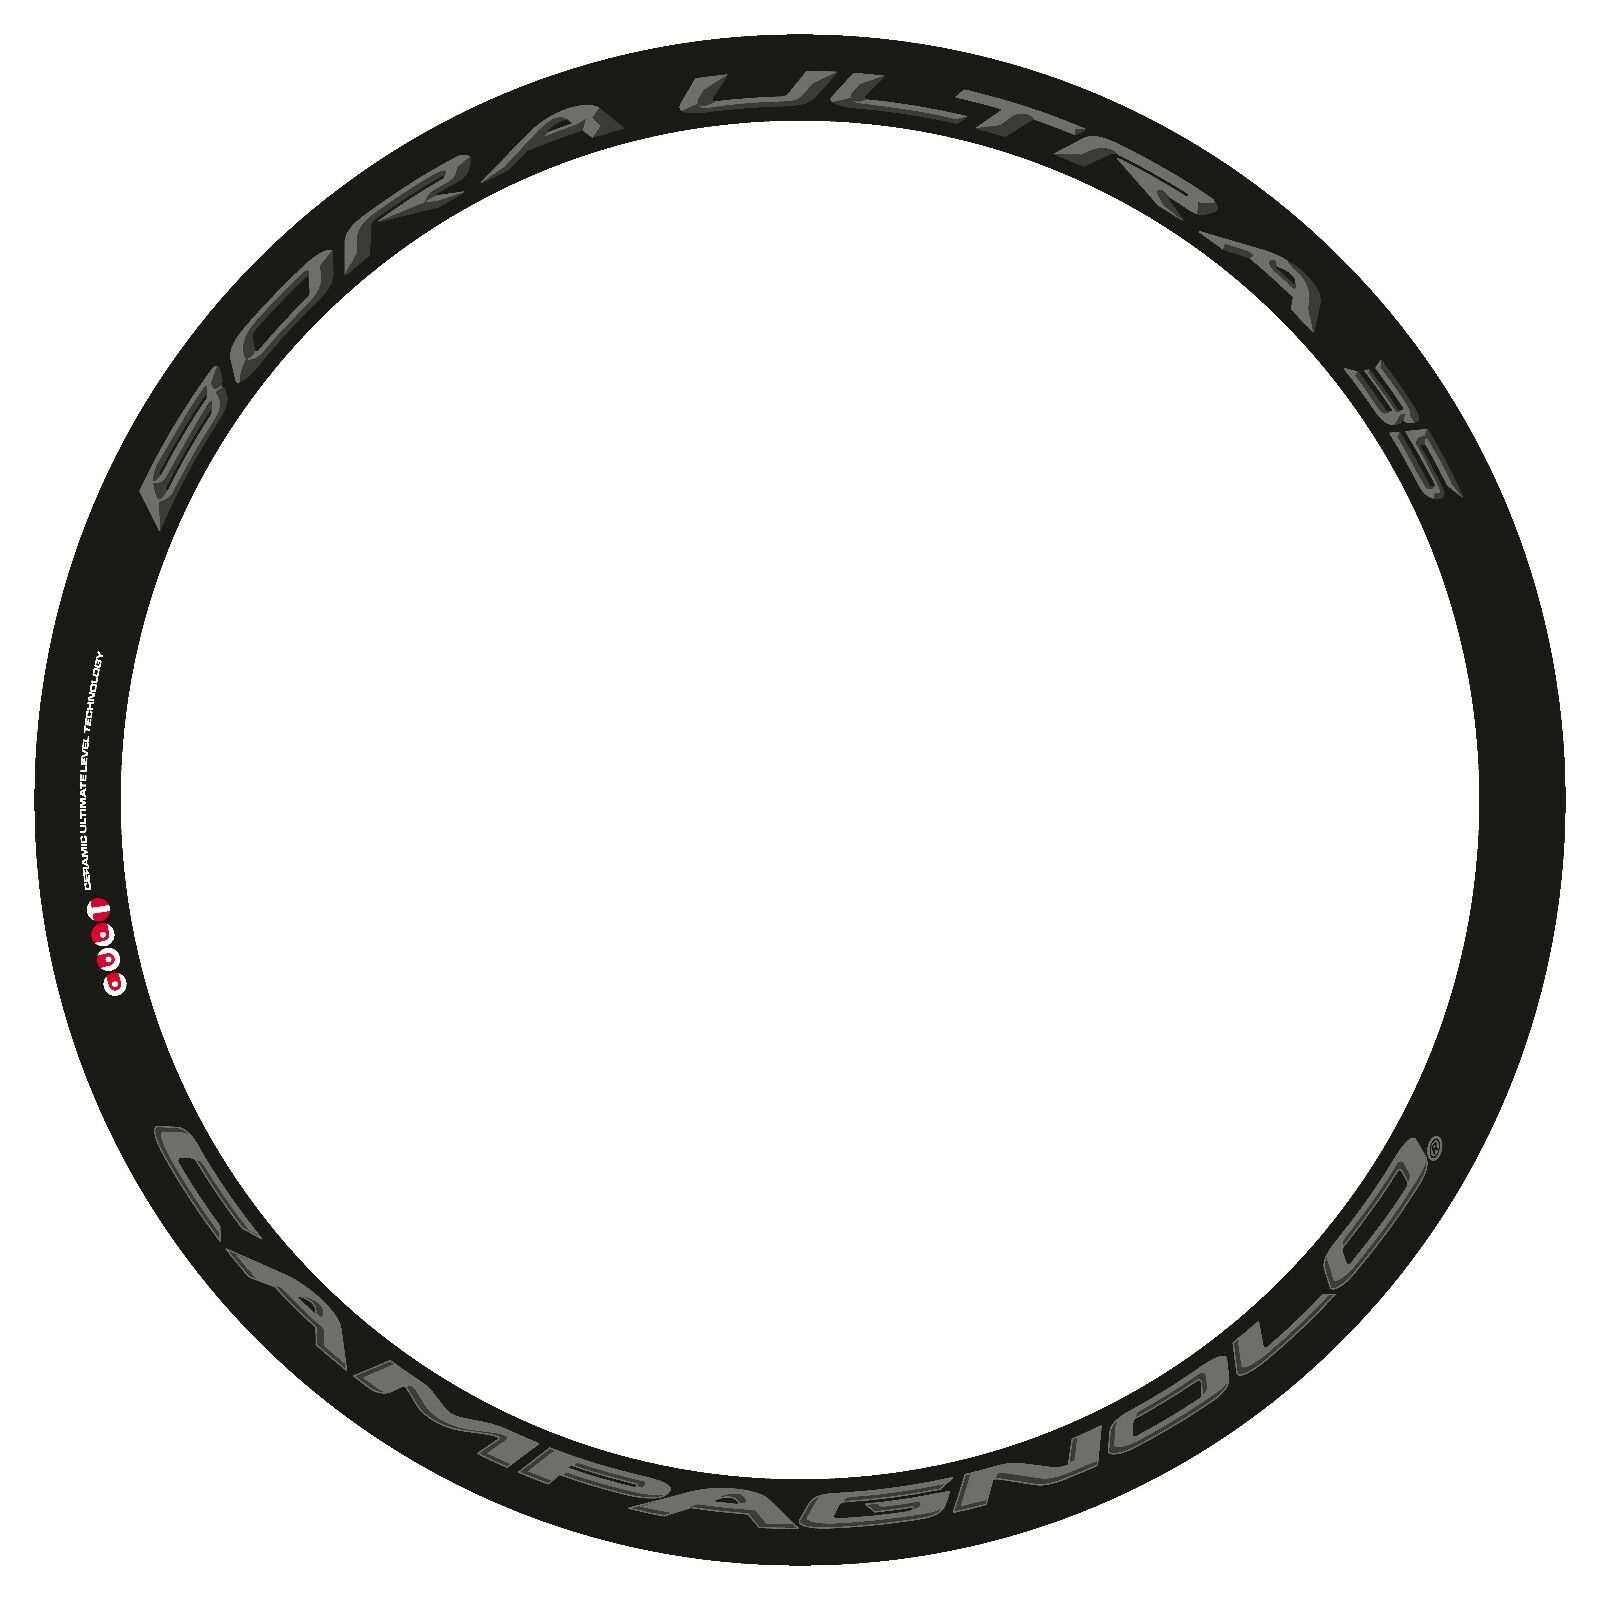 CAMPAGNOLO BORA  ULTRA 35 3D DARK LABEL REPLACEMENT RIM DECAL SET FOR 2 RIMS  low-key luxury connotation